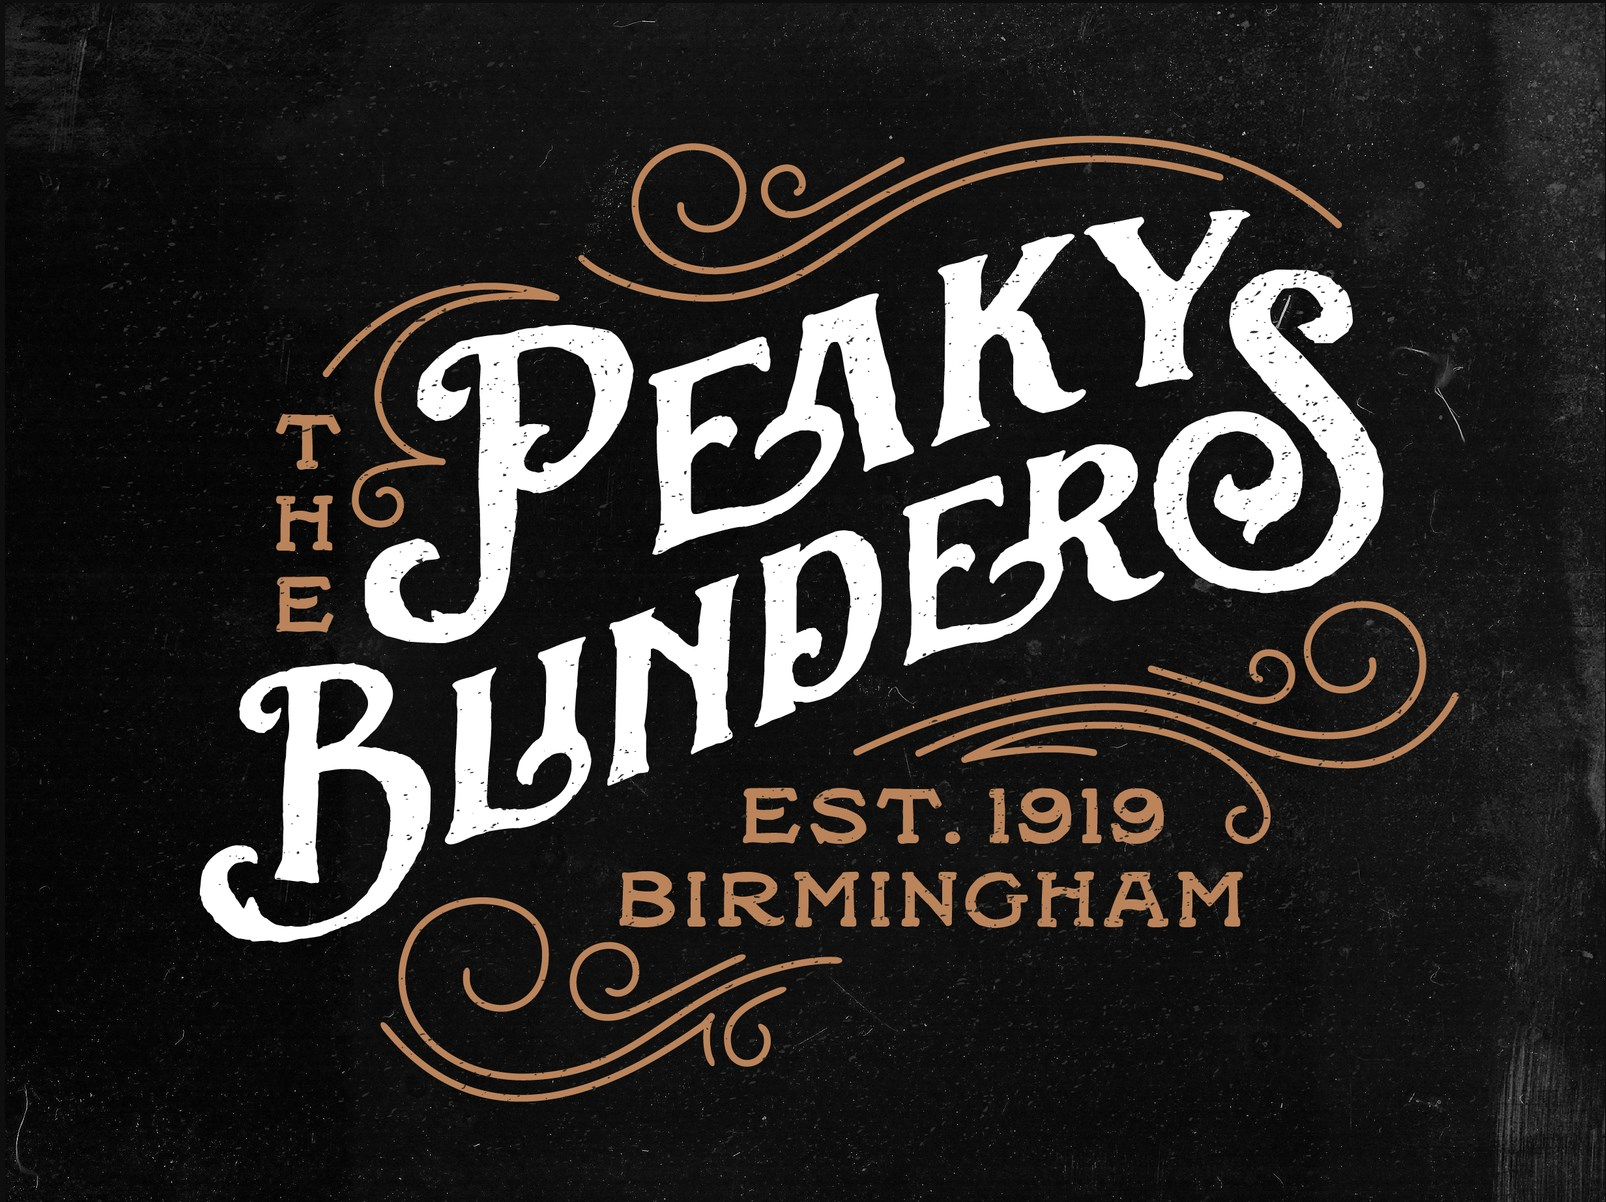 Peaky Blinders, Design by Fasino Design